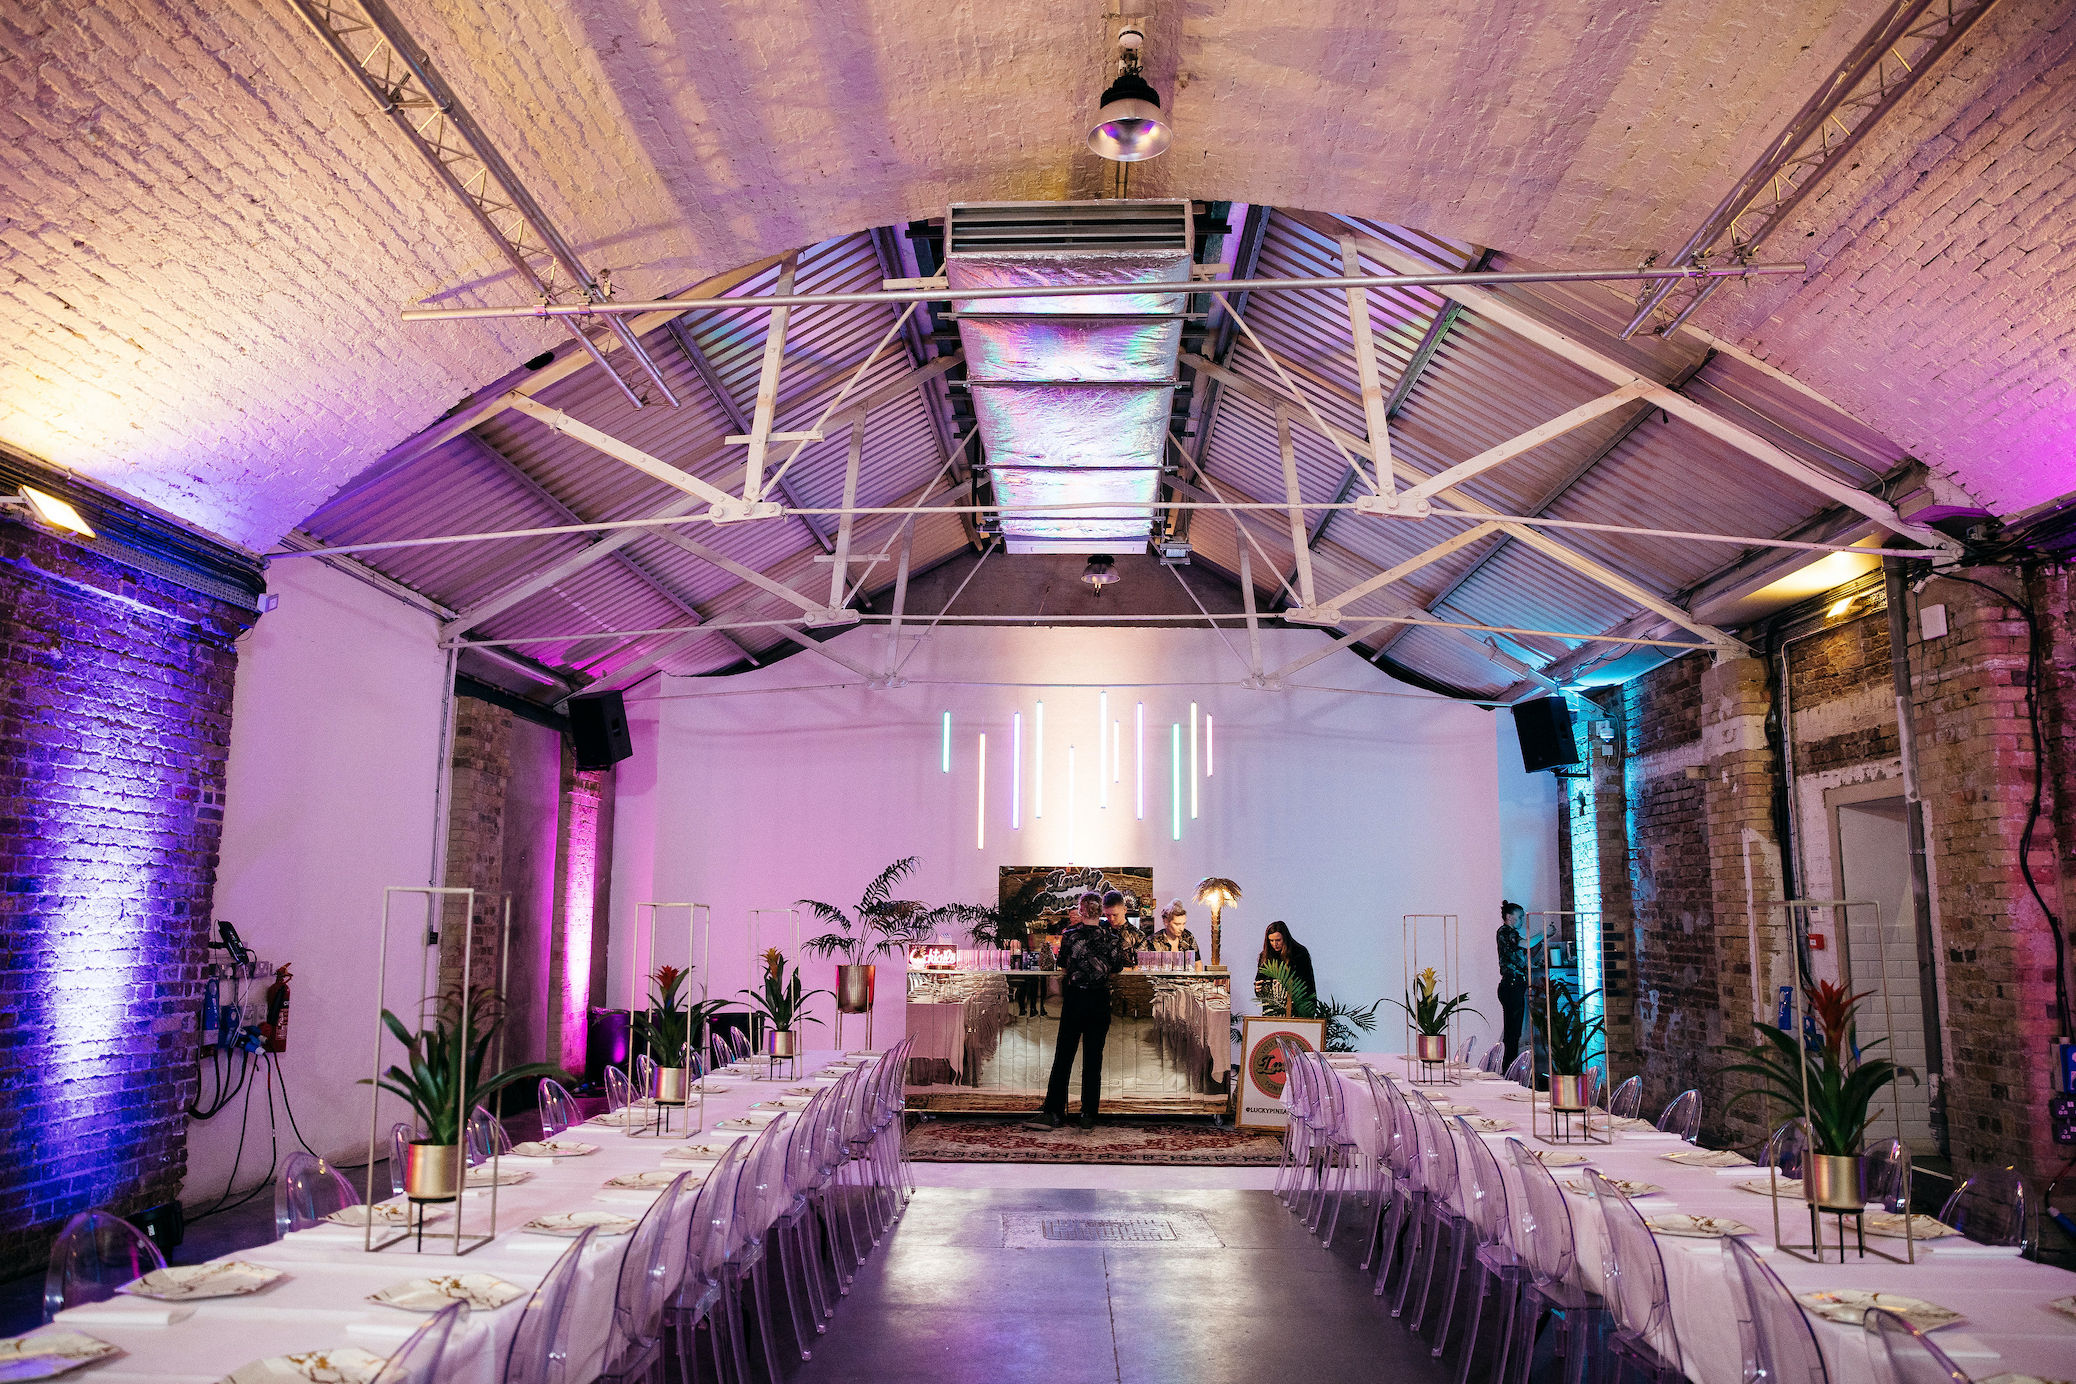 Colourful uplighters, plants and gold decor at Shoreditch Studios wedding